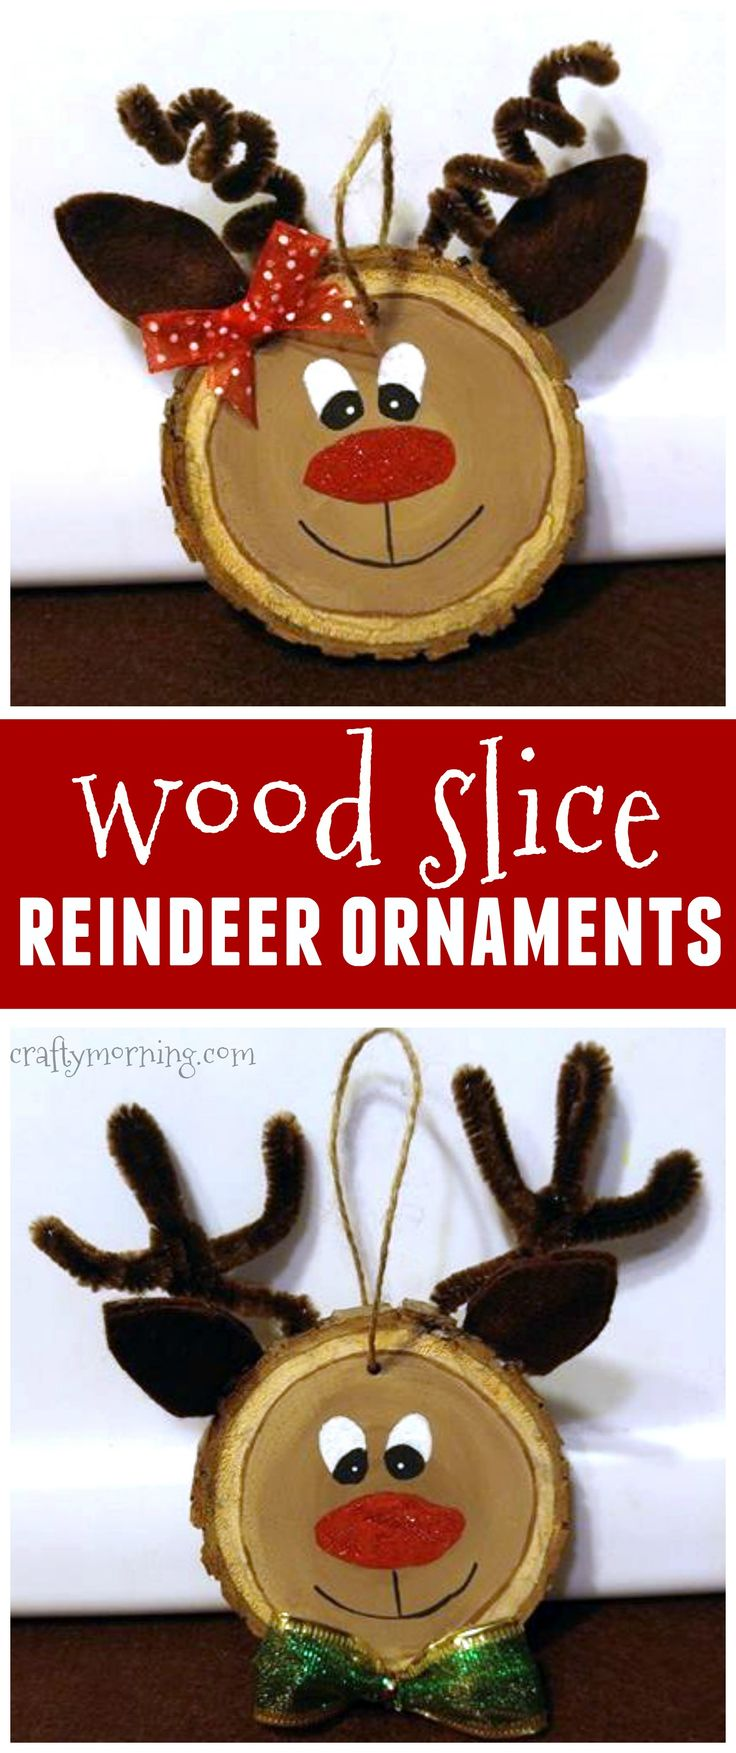 Wonderful Kids Christmas Craft Gift Ideas Part - 8: Wood Slice Reindeer Ornaments For A Kids Christmas Craft...these Would Make  Cute